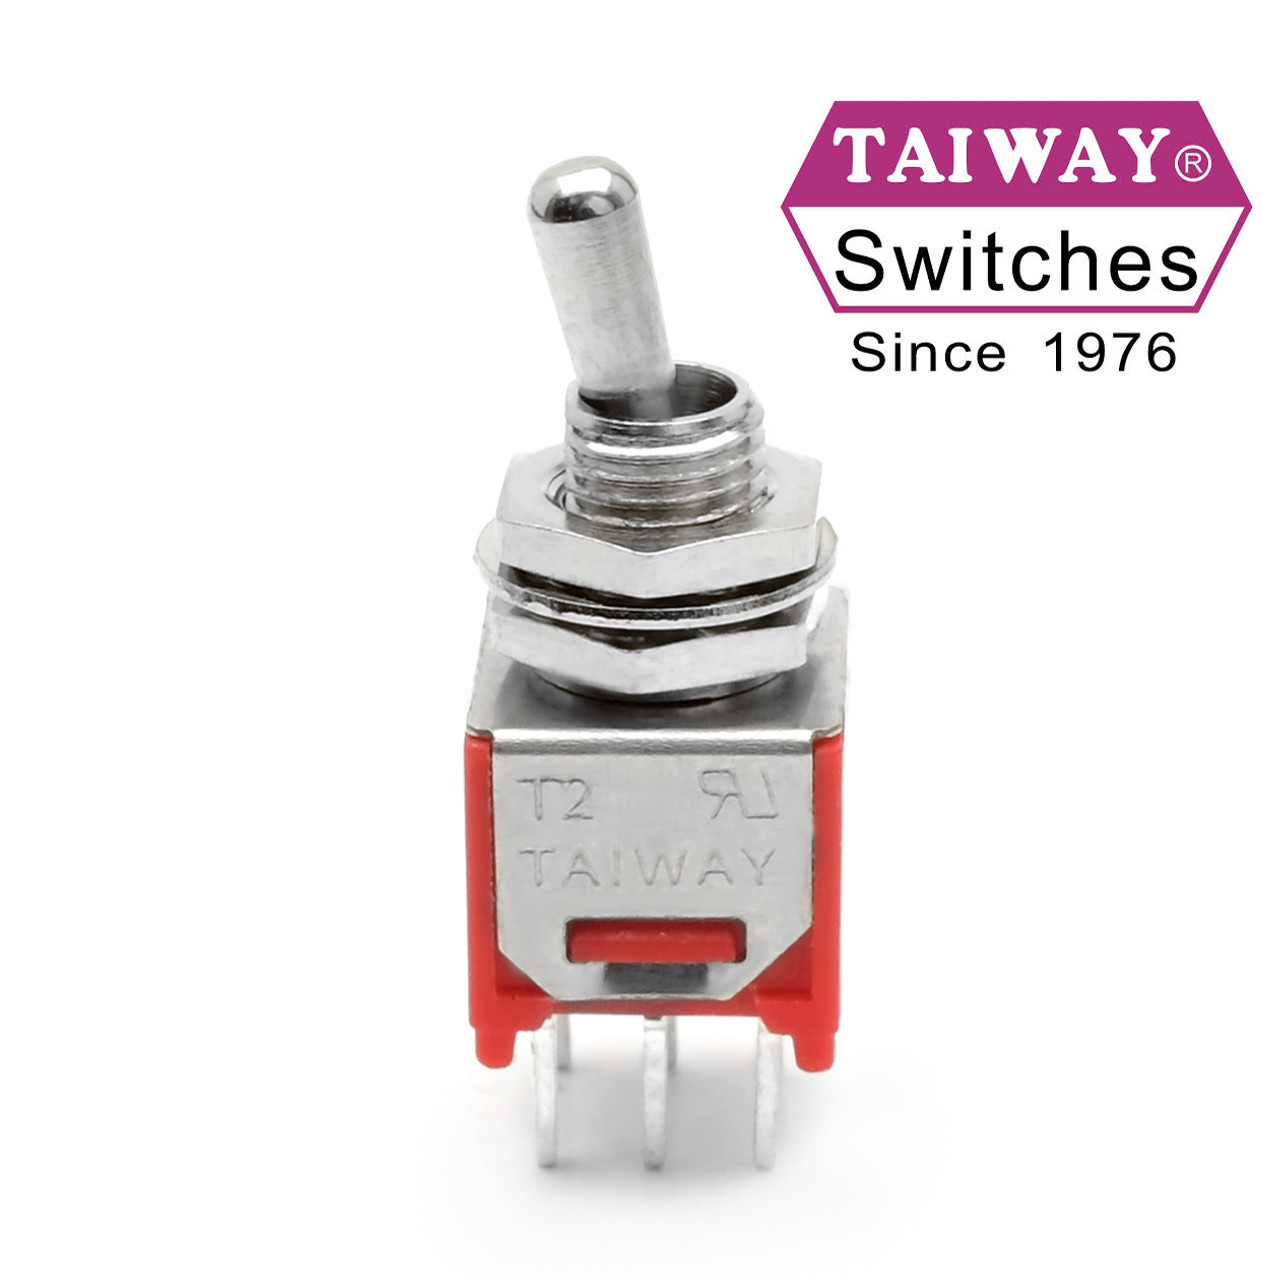 Taiway Sub Mini Dpdt On Switch Pcb Mount Short Shaft Love Wiring Diagram Led Indicator Brand Toggle 200 Mdp1 T2b1m2qe